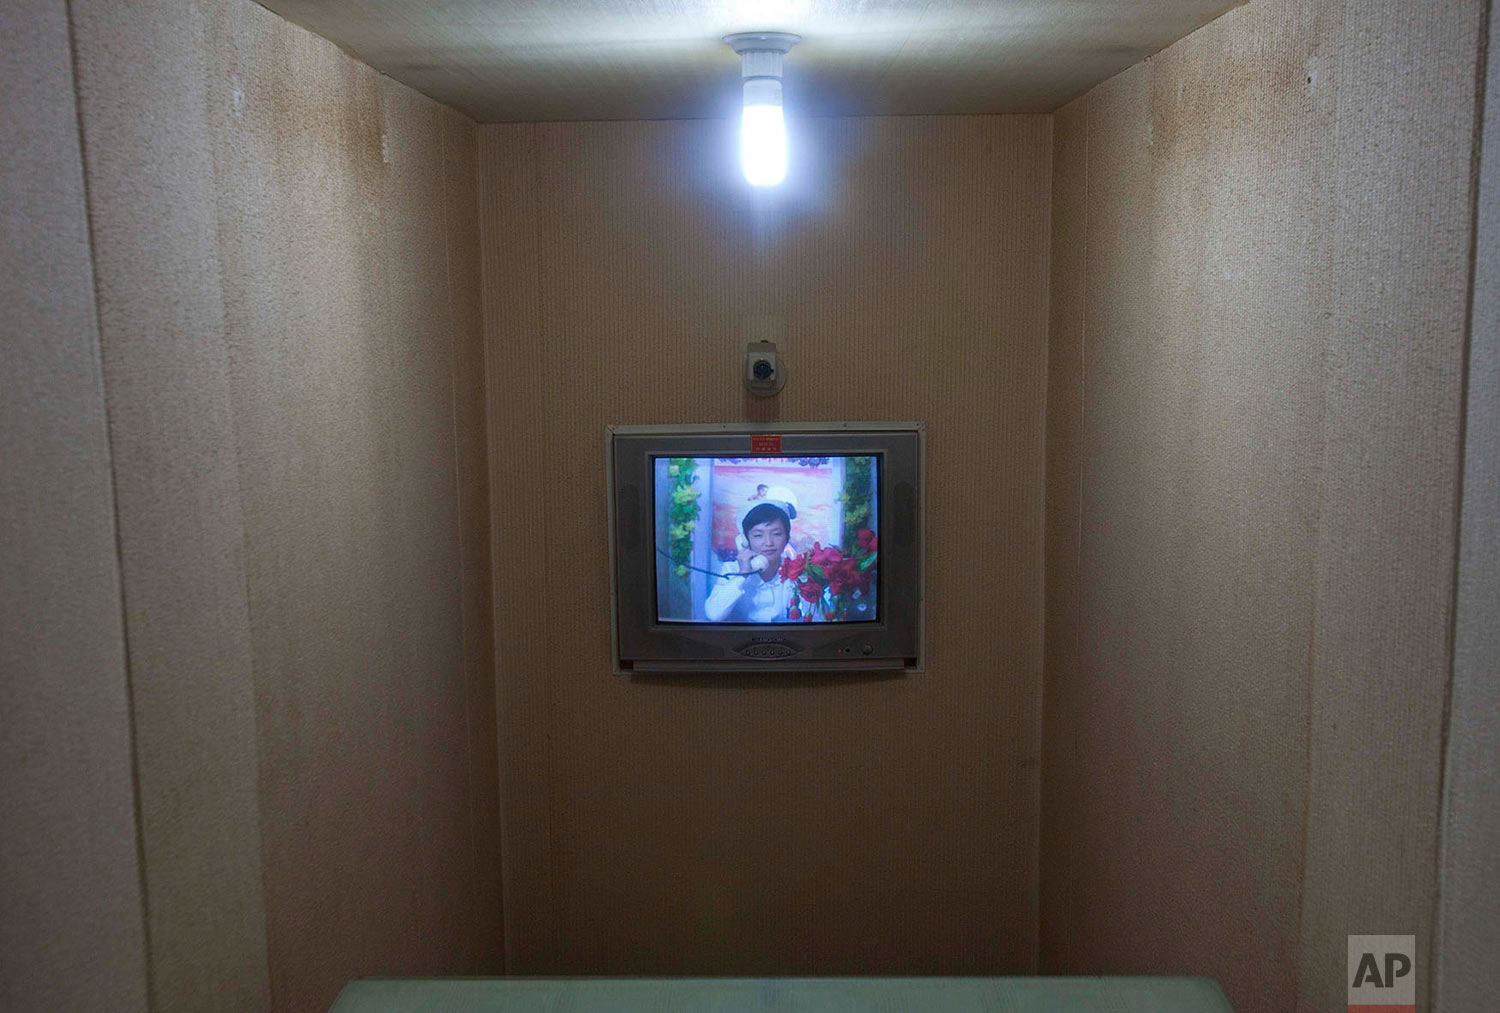 A North Korean nurse speaks by video conference and telephone to a doctor inside a maternity hospital in Pyongyang, North Korea, on Oct. 11, 2011. (AP Photo/David Guttenfelder)